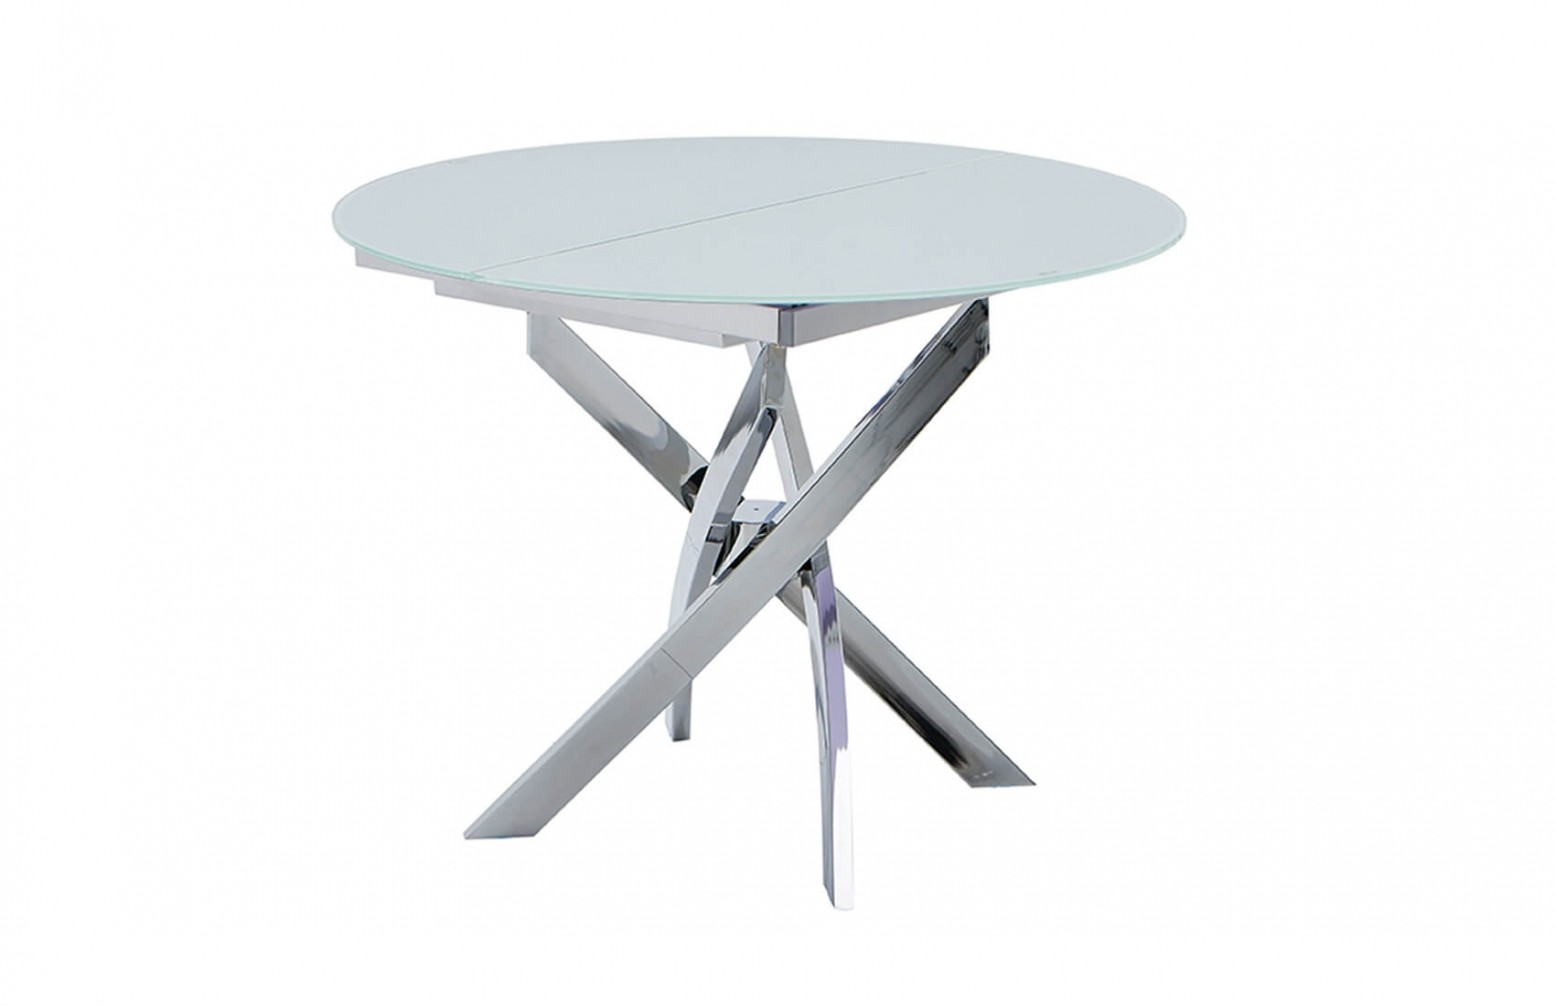 2303 Modern Round Glass Extendable Dining Table White Chrome By Esf Furniture Sohomod Com